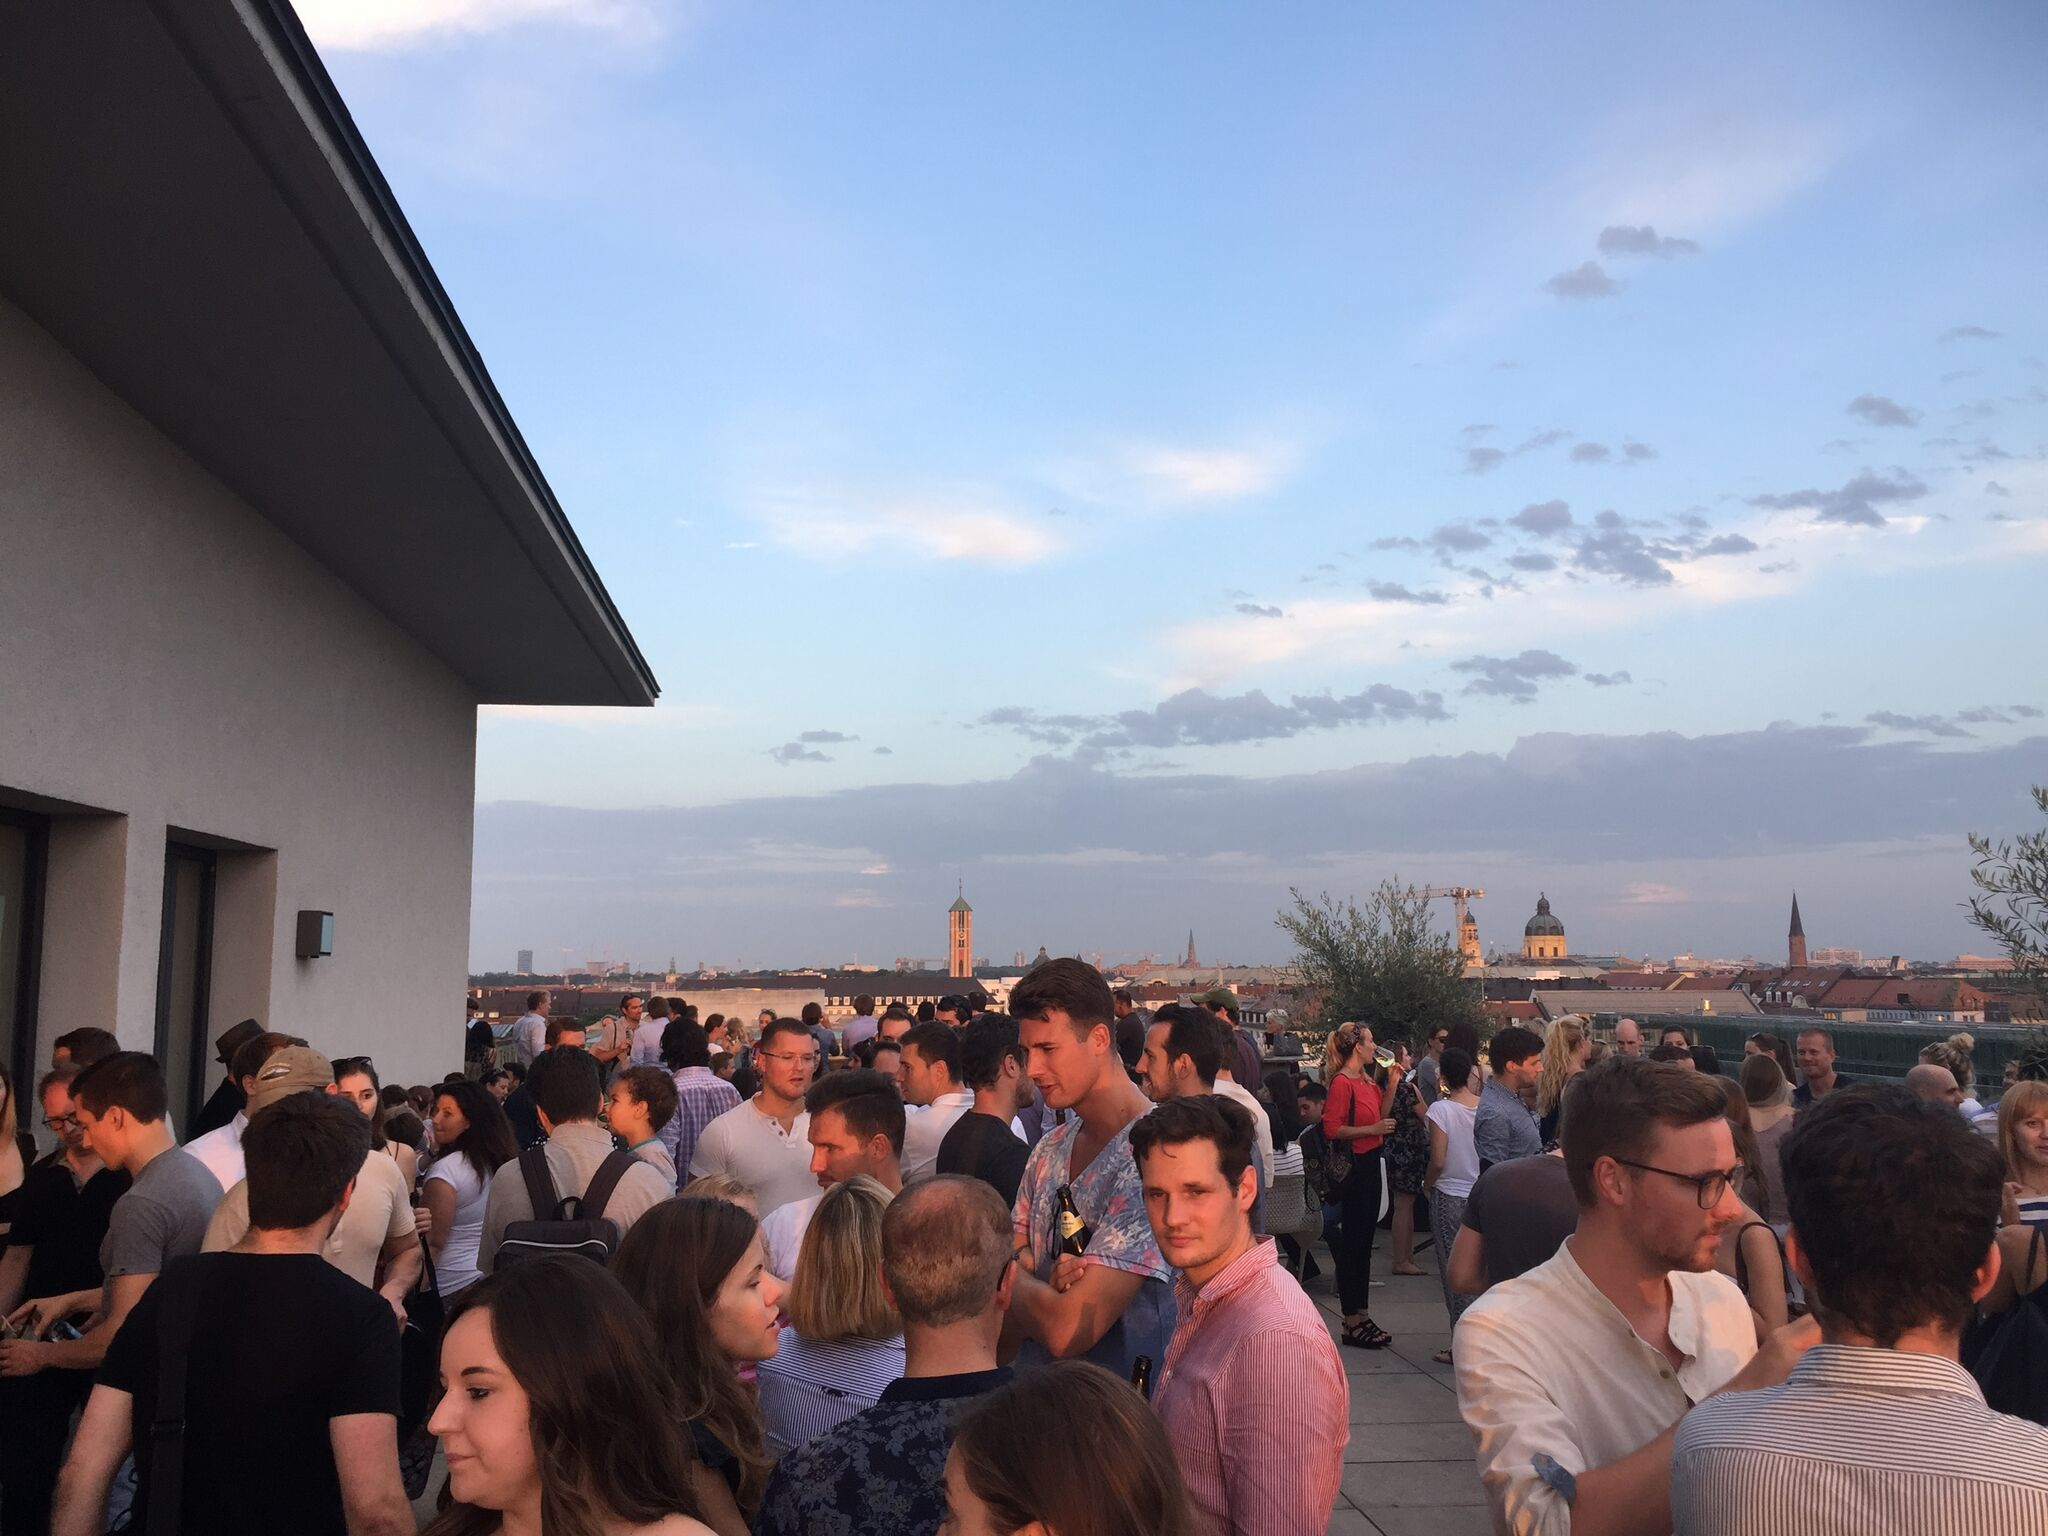 IMG 2245 1024x768 - Best Outdoor Bars and Rooftops for a Drink in Munich